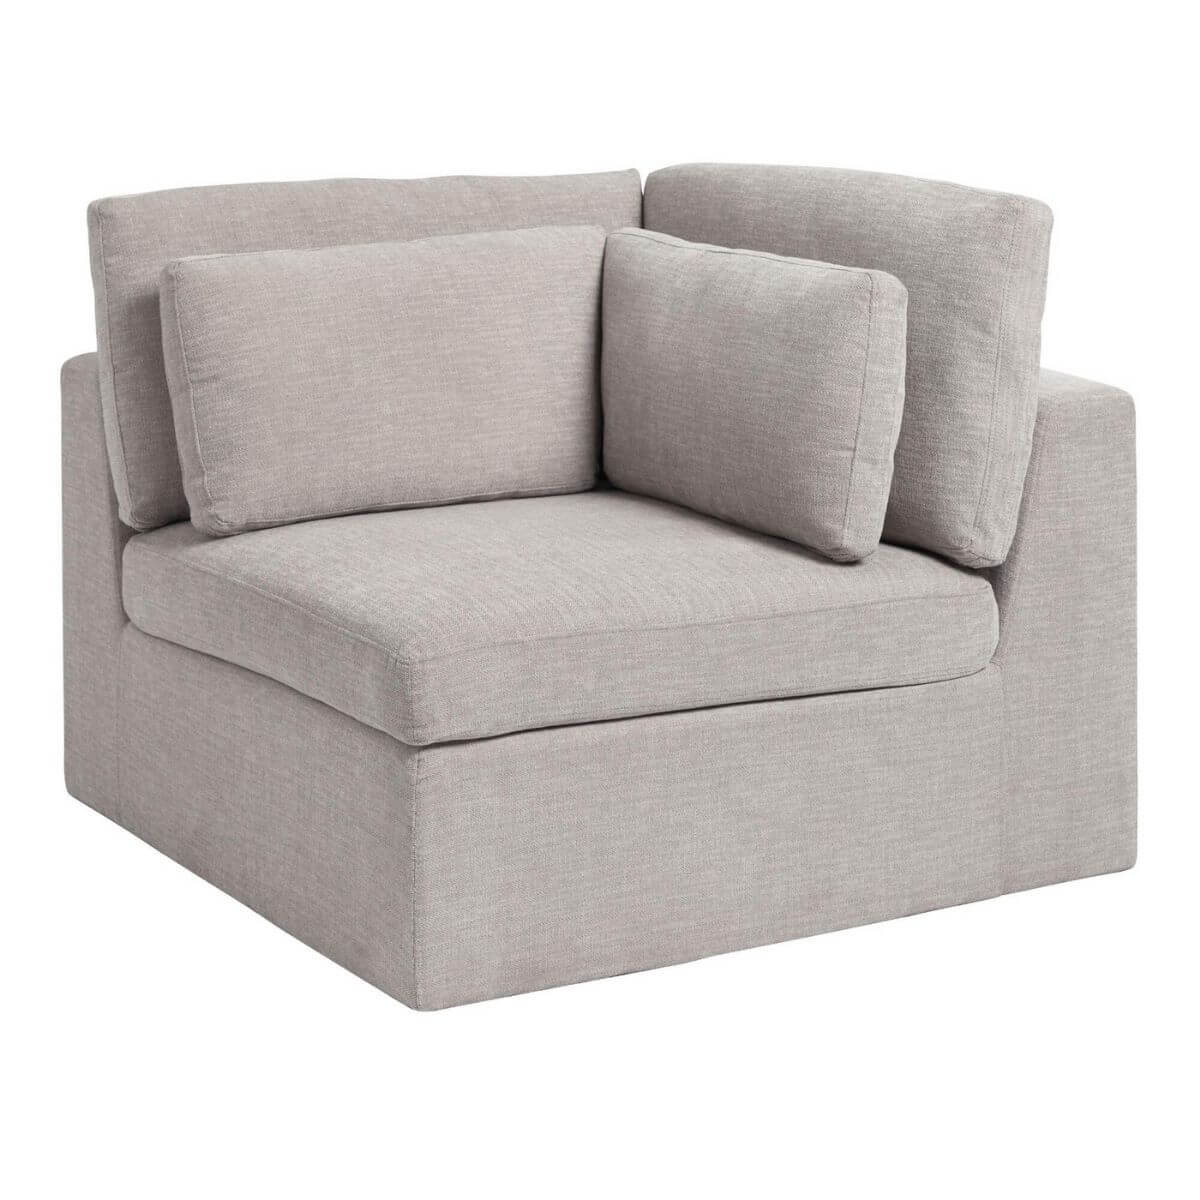 Grey fabric corner chair with pillows.